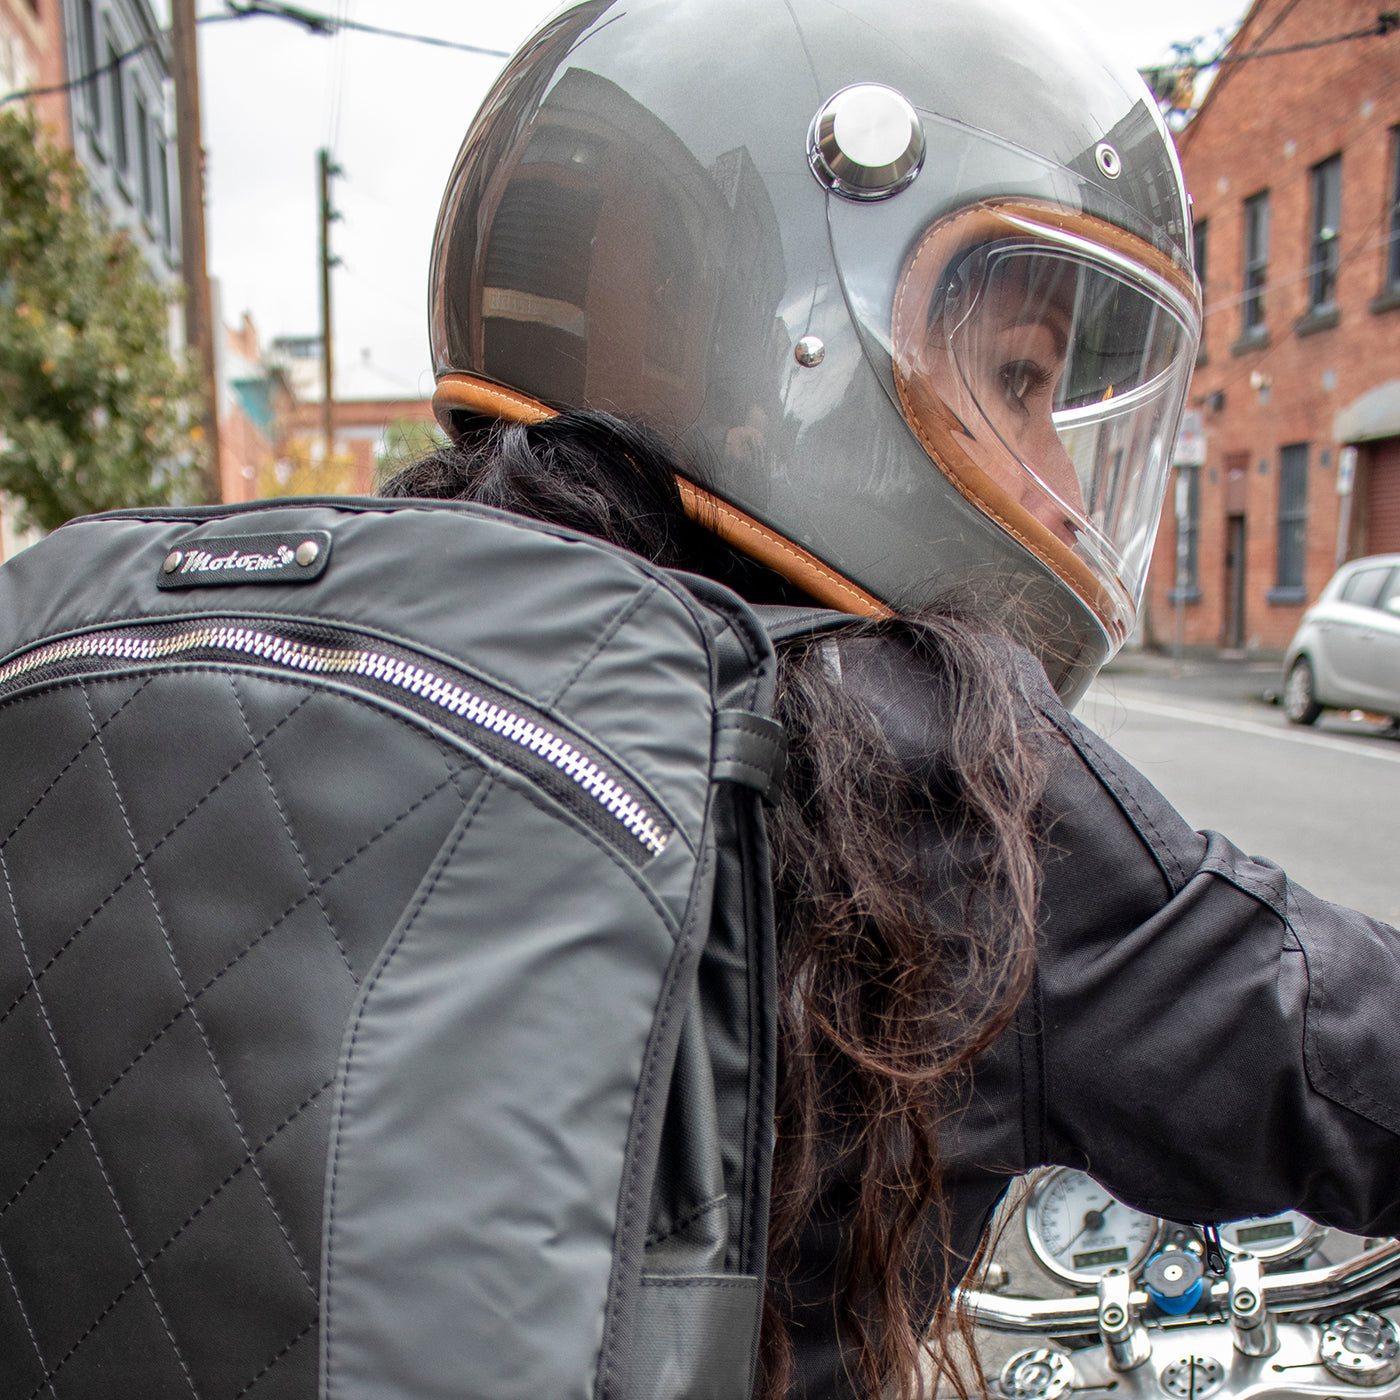 6 Motorcycle Items To Keep You Warm This Winter